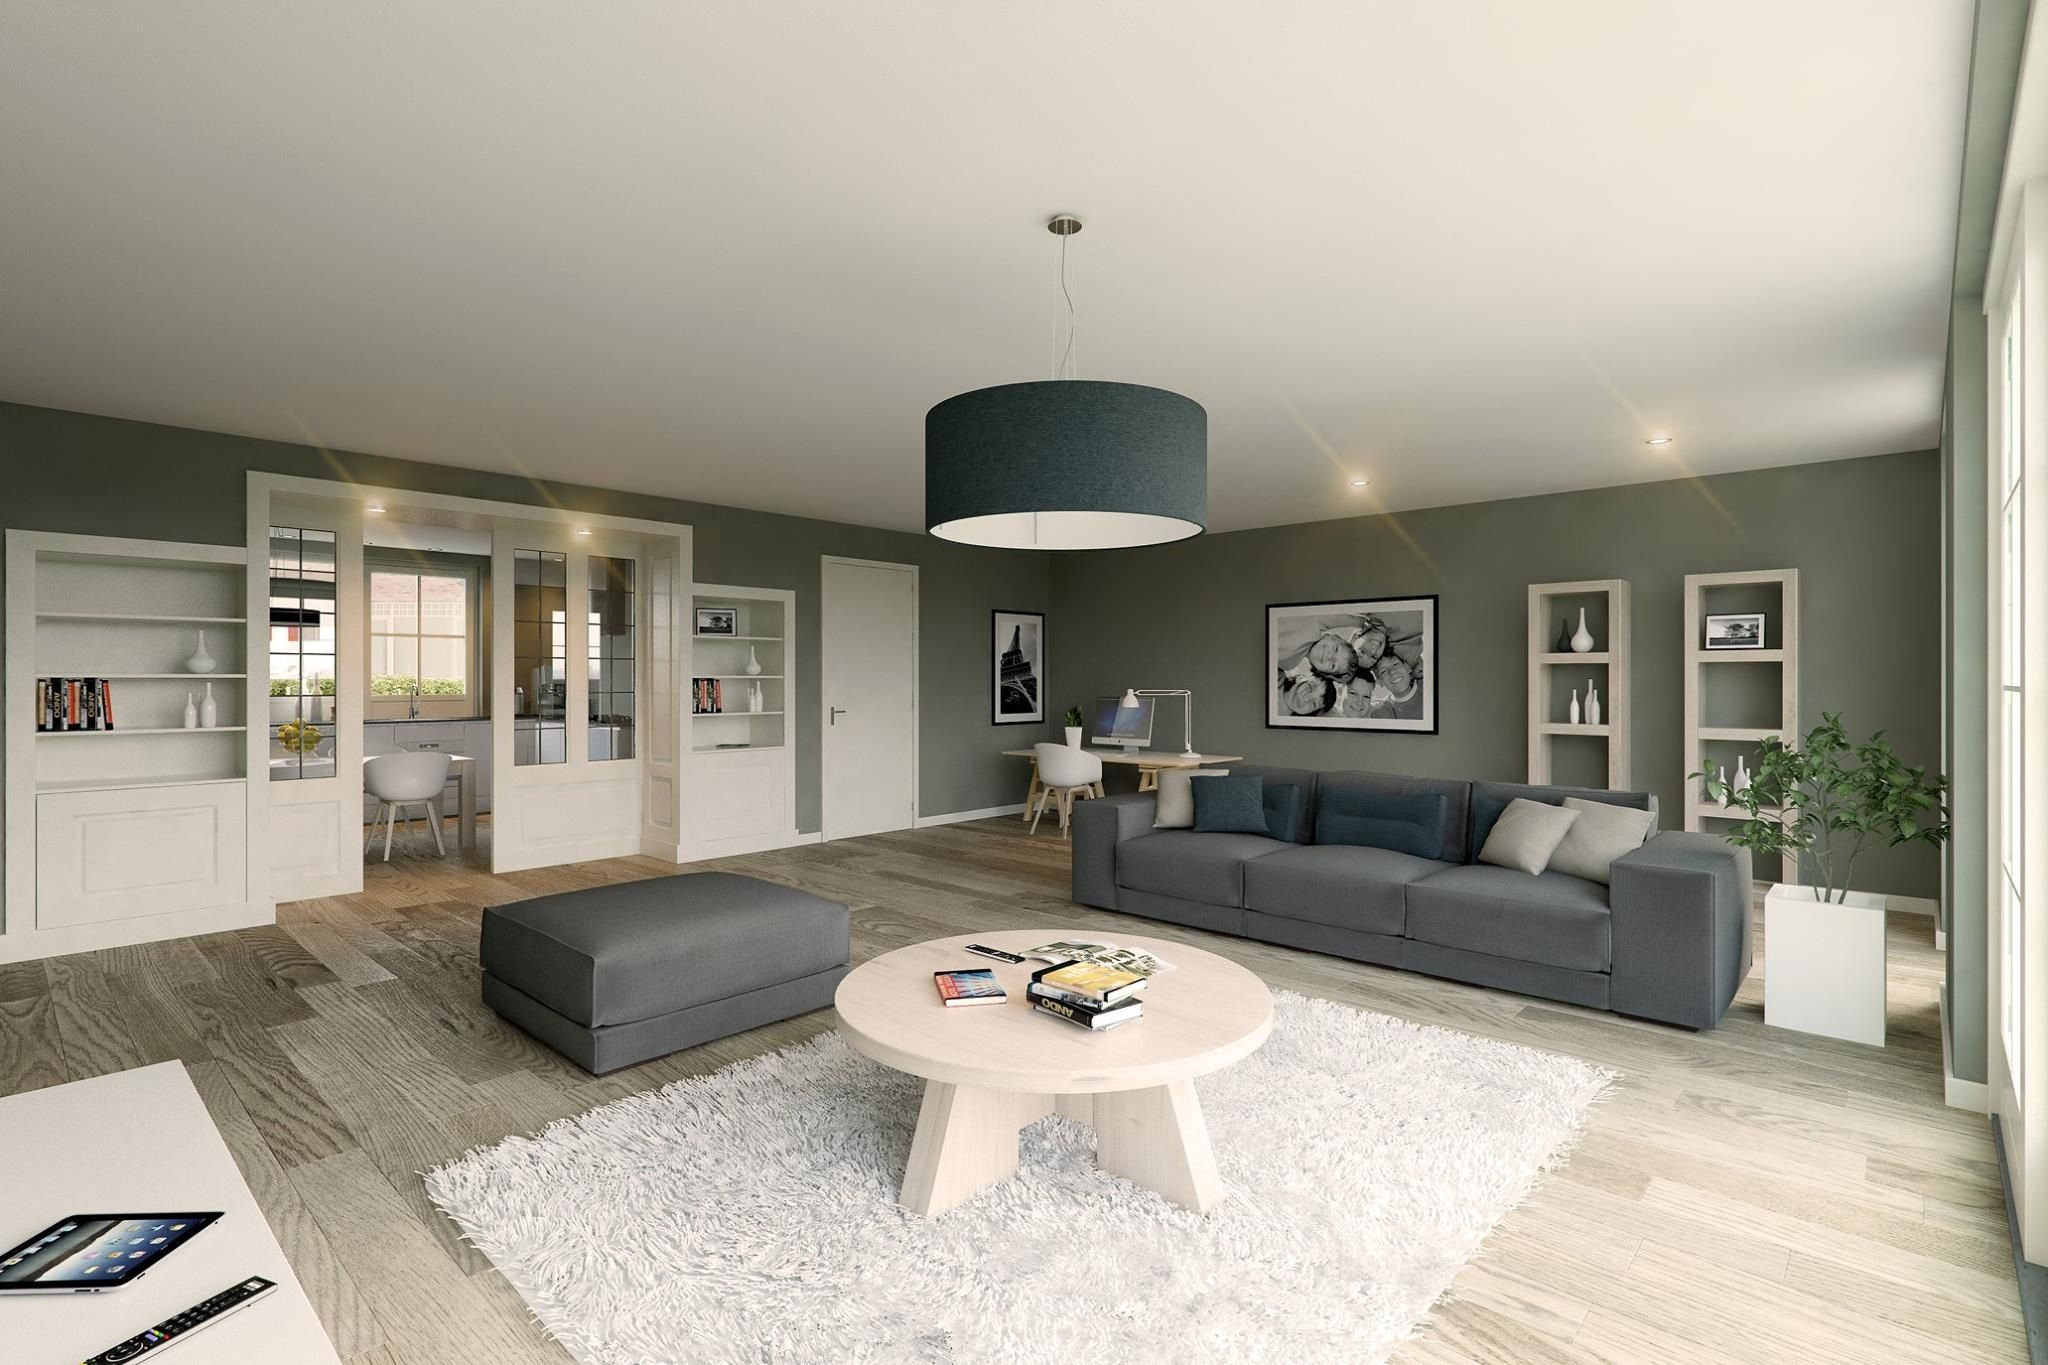 Beautiful Woonkamer Ideeën Images - New Home Design 2018 - ummoa.us